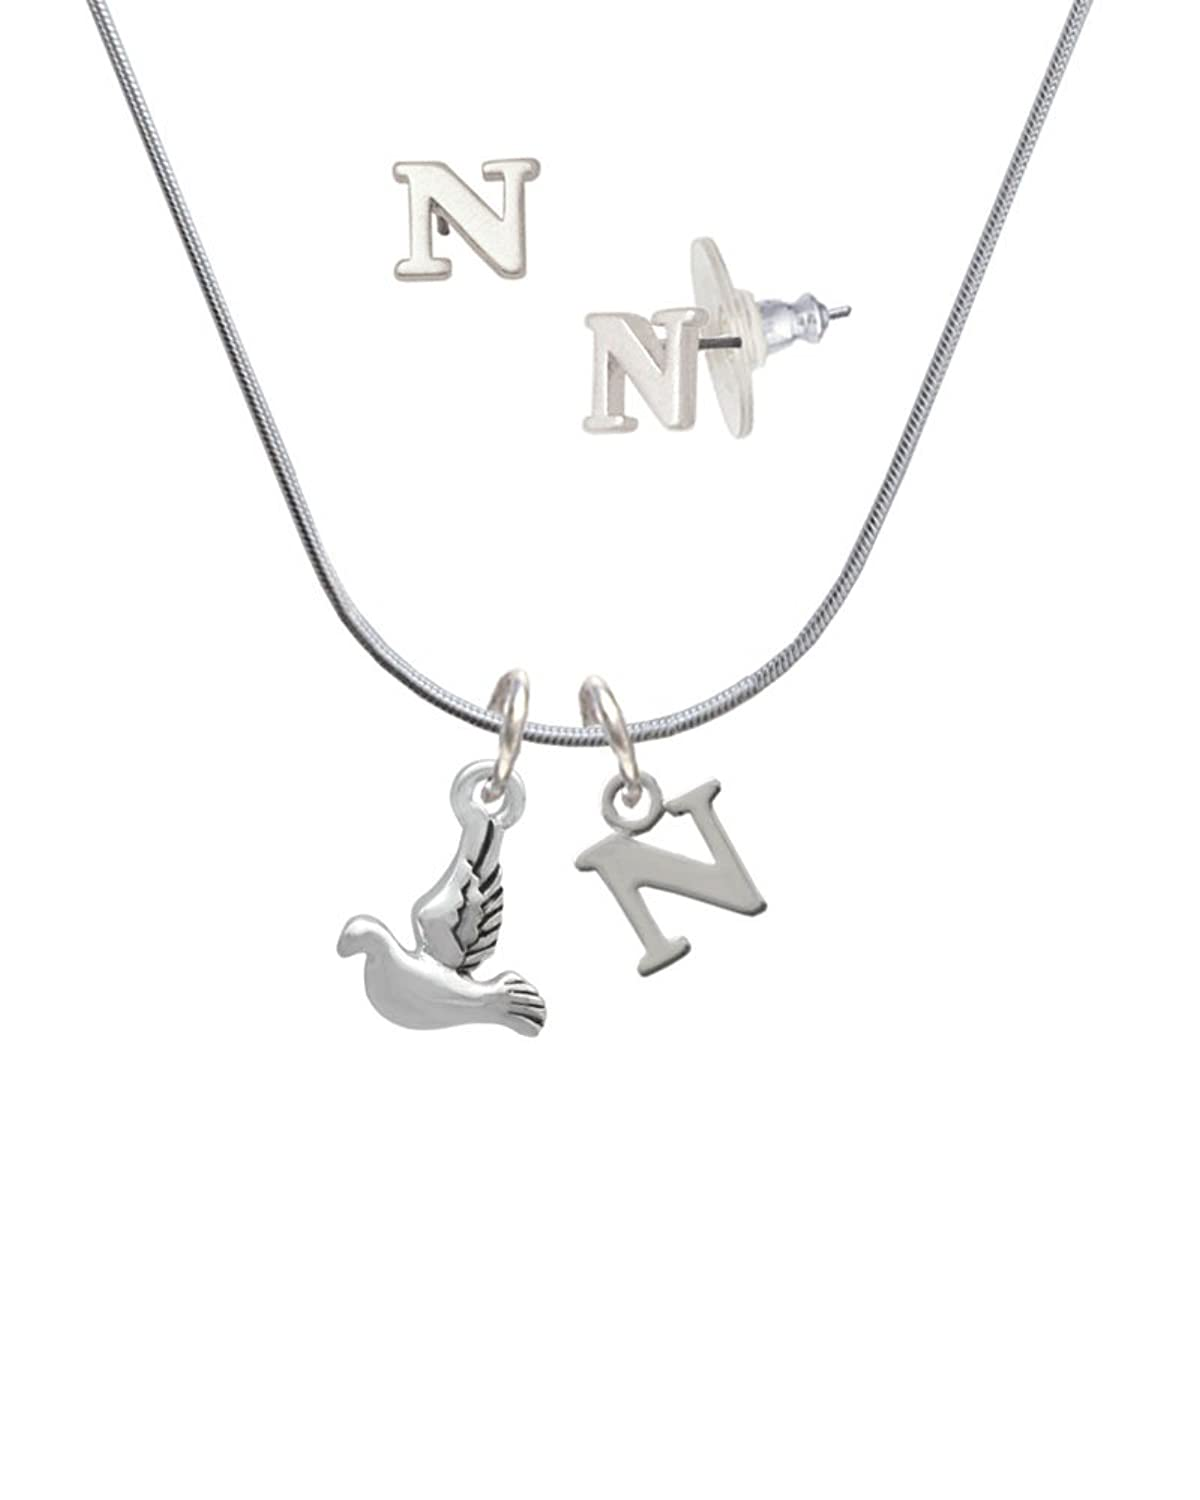 2-D Small Dove - N Initial Charm Necklace and Stud Earrings Jewelry Set